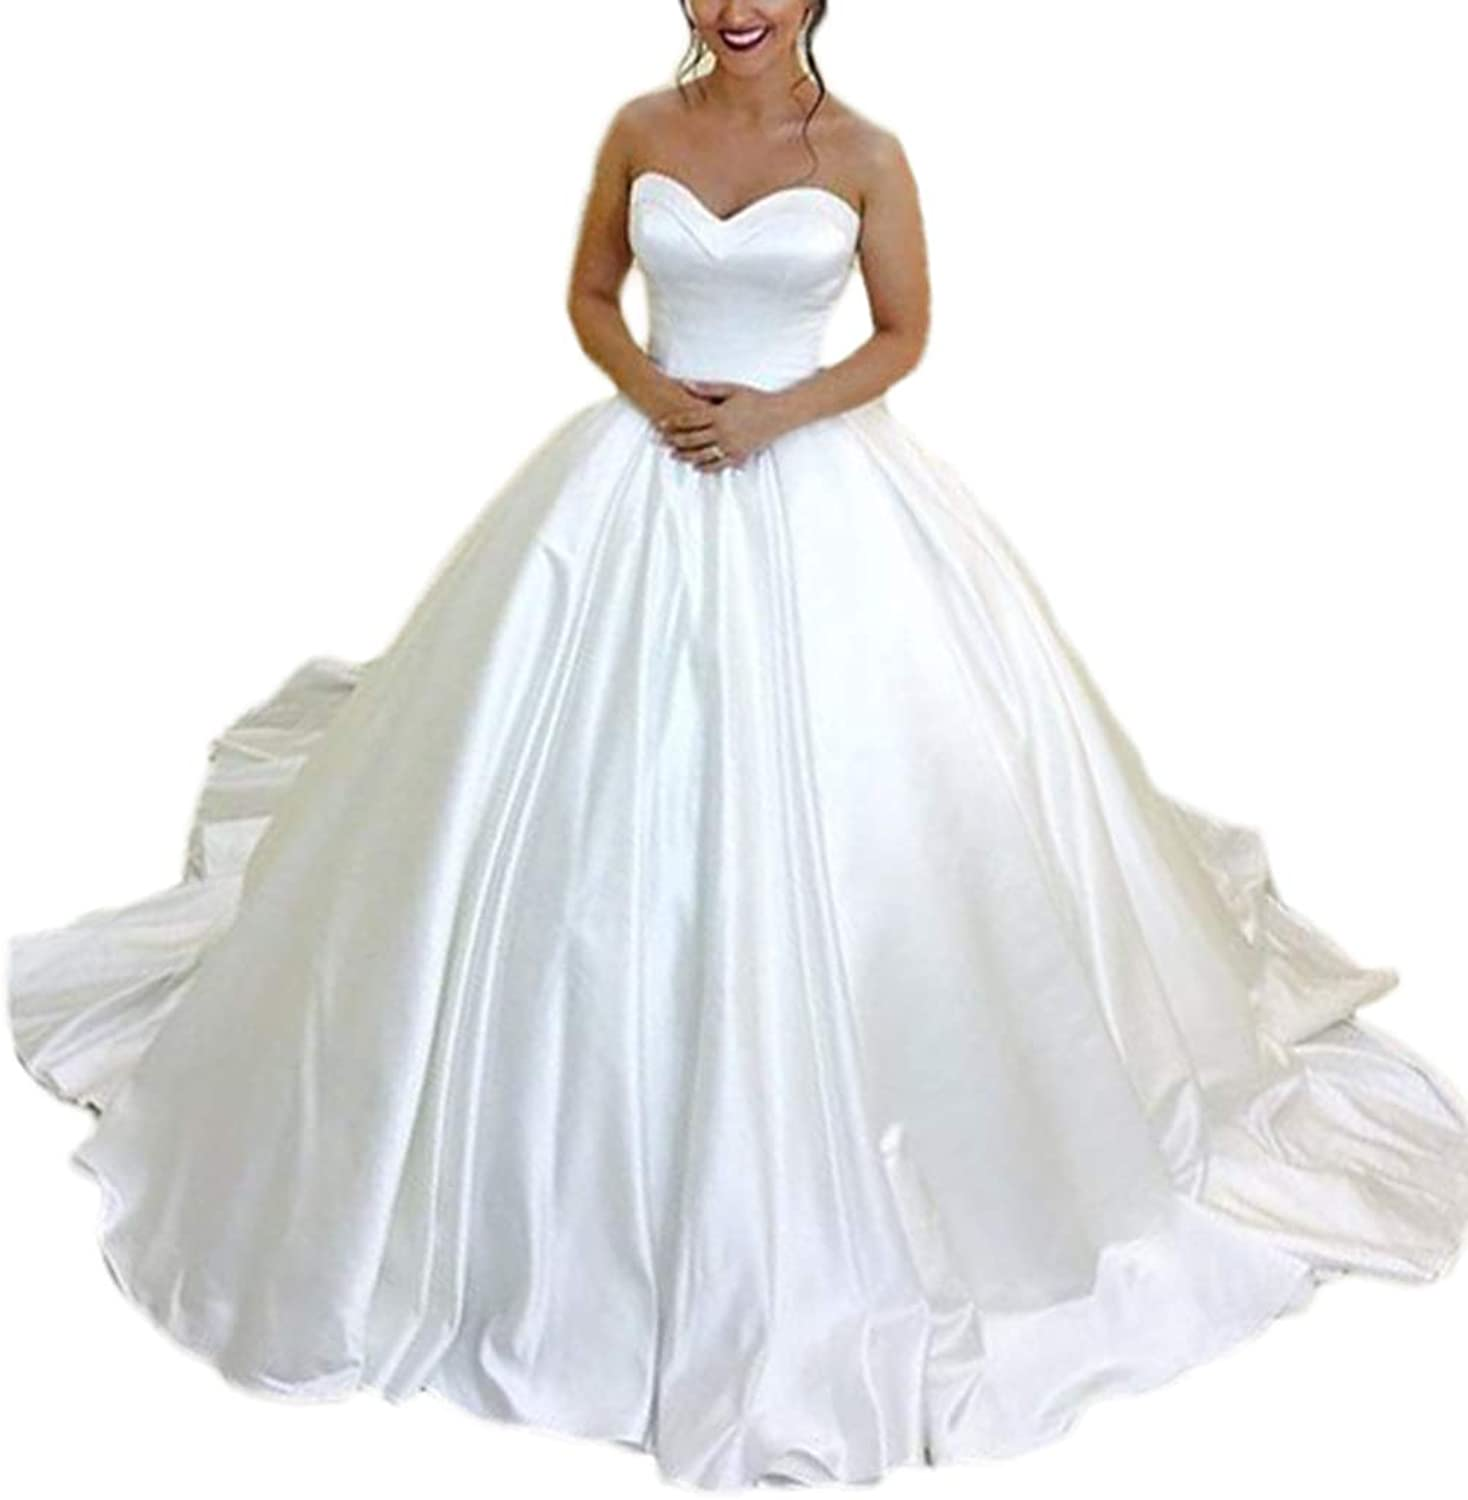 Alilith.Z Sexy Sweetheart Satin Wedding Dresses for Bride 2019 Ball Gown Bridal Wedding Gowns for Women with Long Train